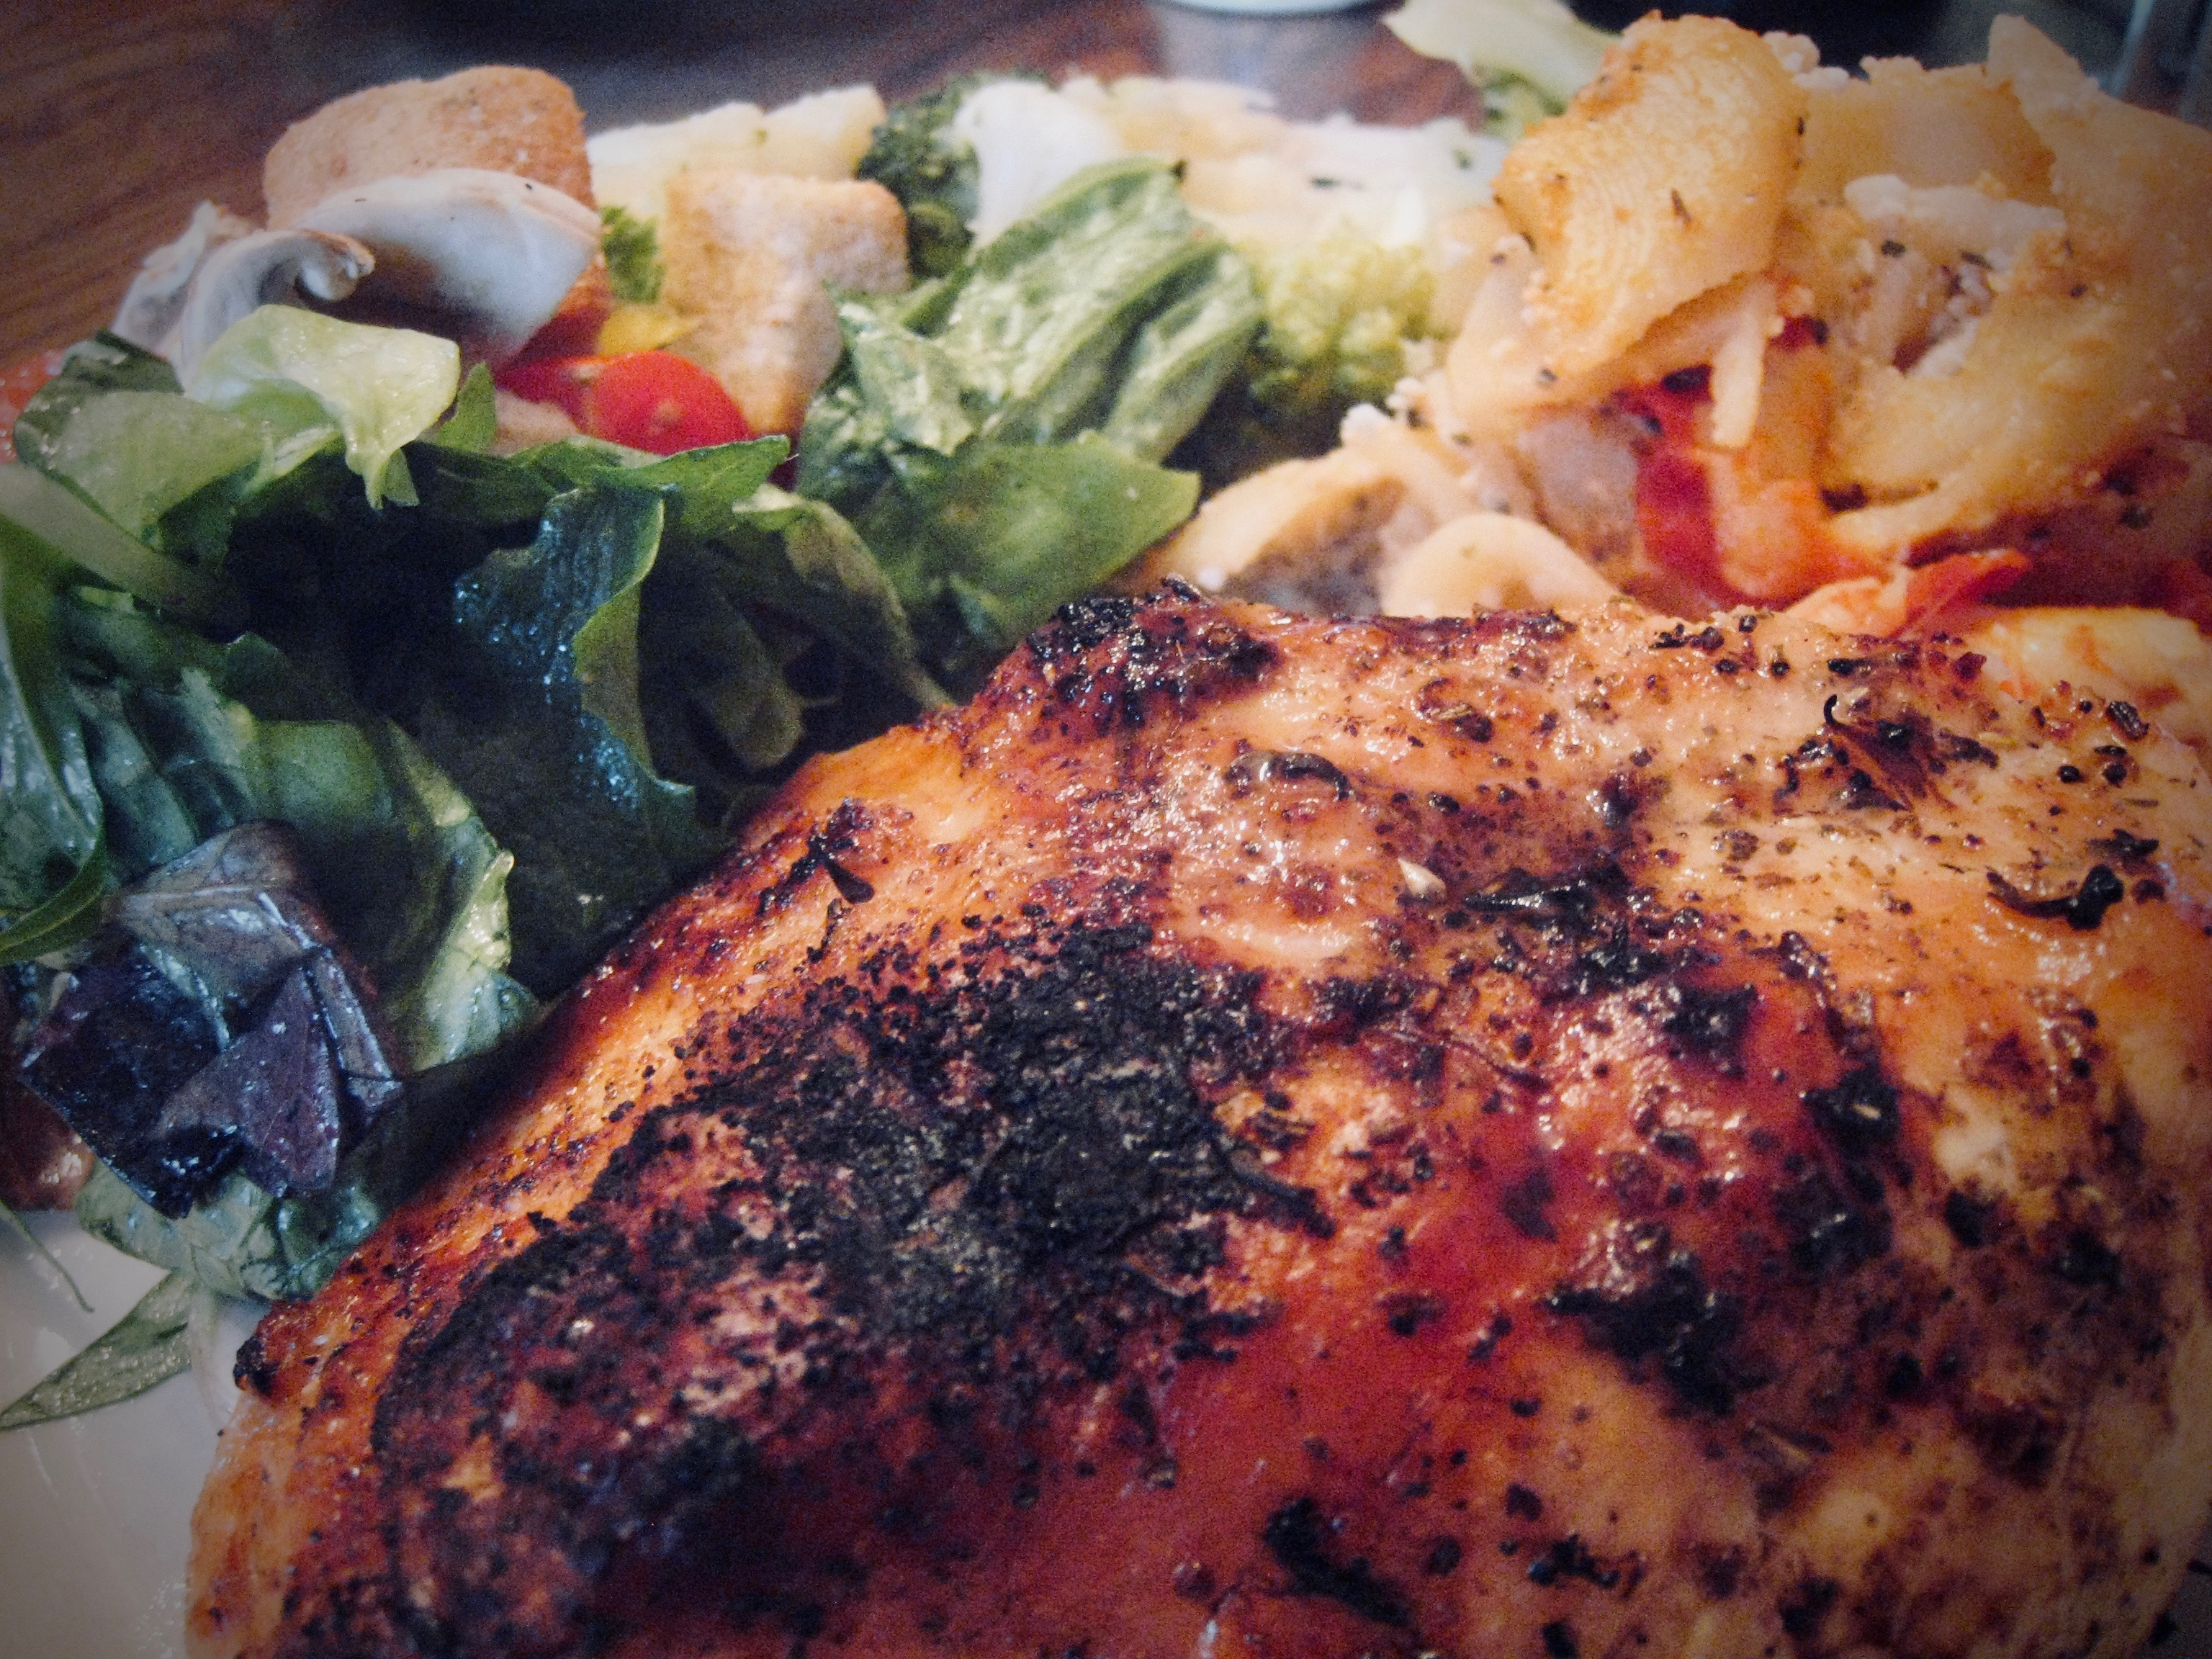 Grilled Chicken with Pasta Bake